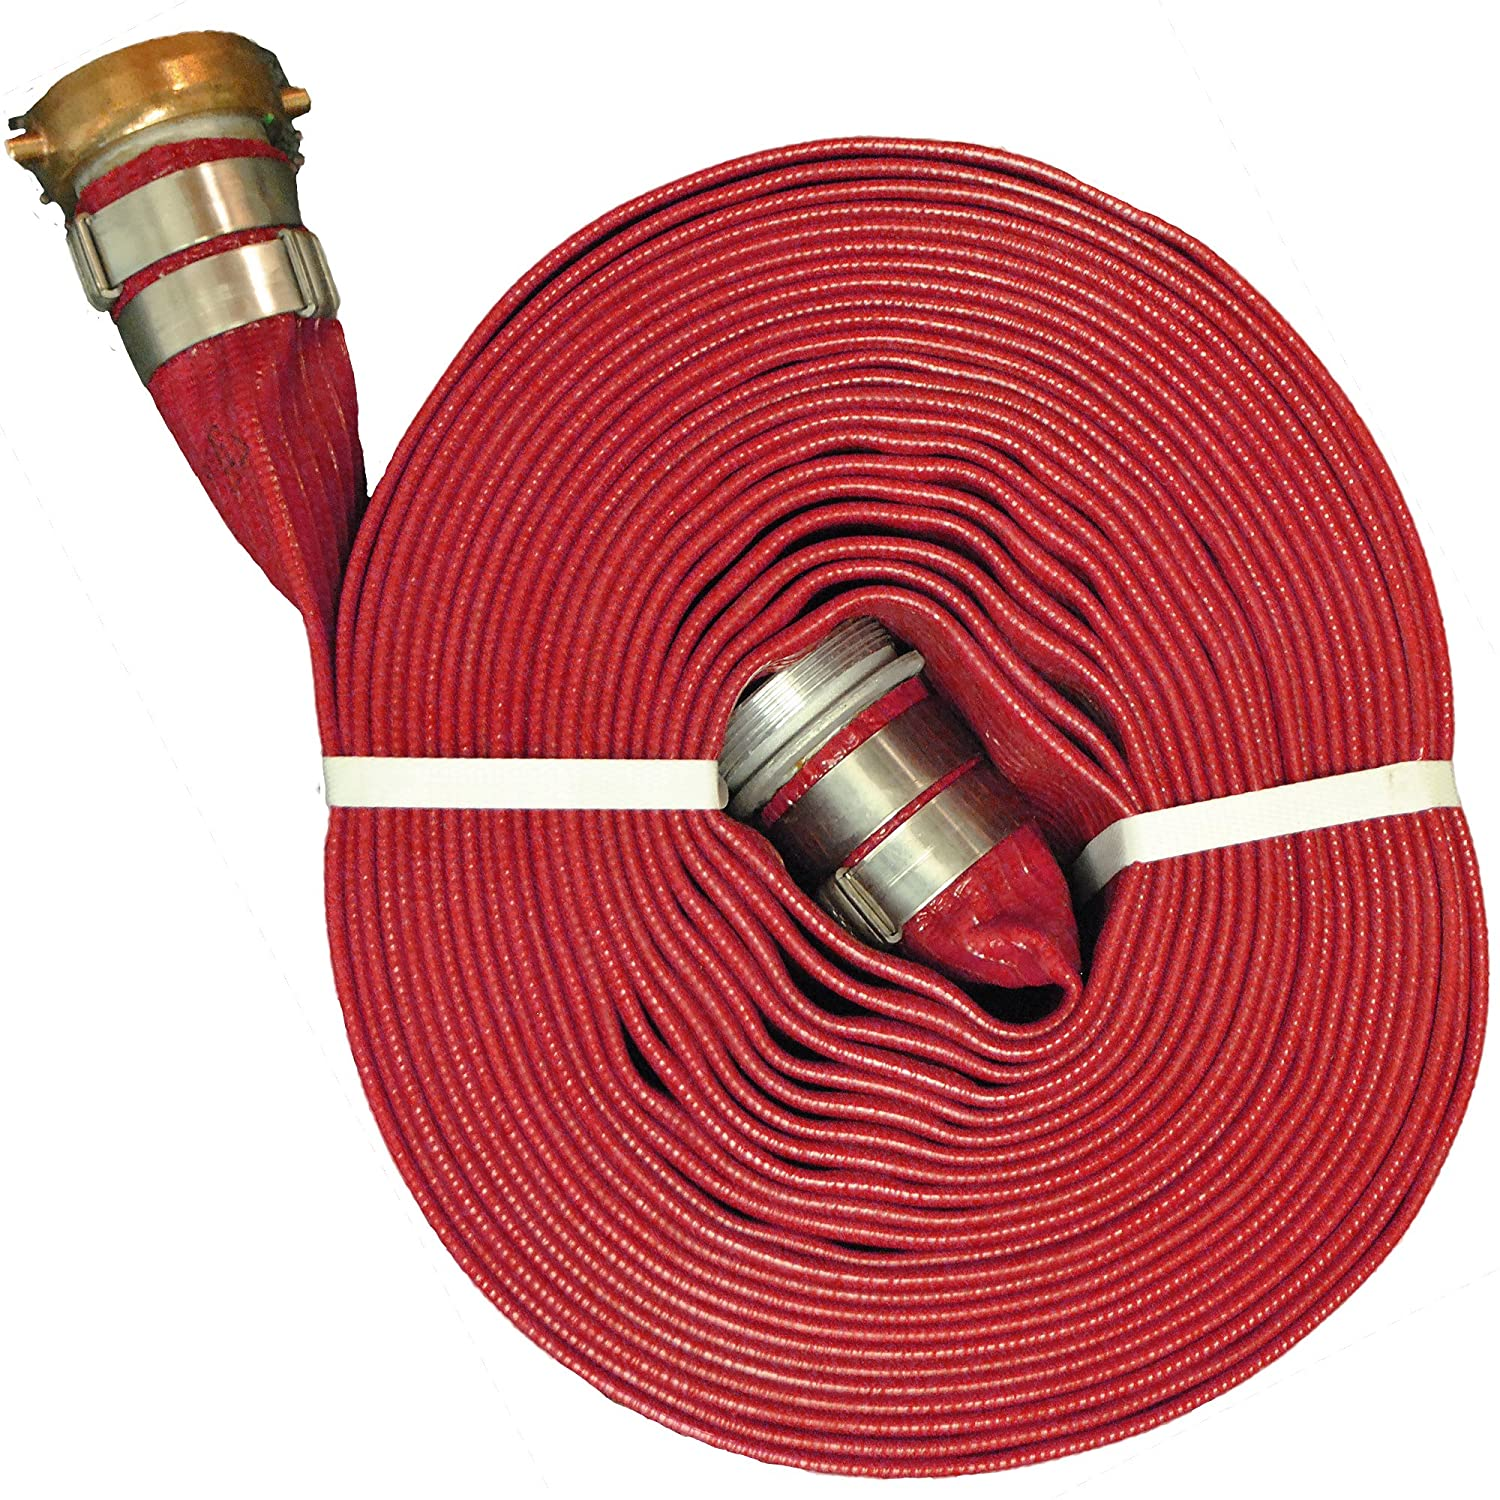 """JGB Enterprises A008-0321-1650NU Eagle Red PVC Discharge Hose, 2"""" x 50', Campbell Water Shank Couplings, 150 psi Working Pressure, -14 Degree F to 170 Degree F: Industrial & Scientific"""